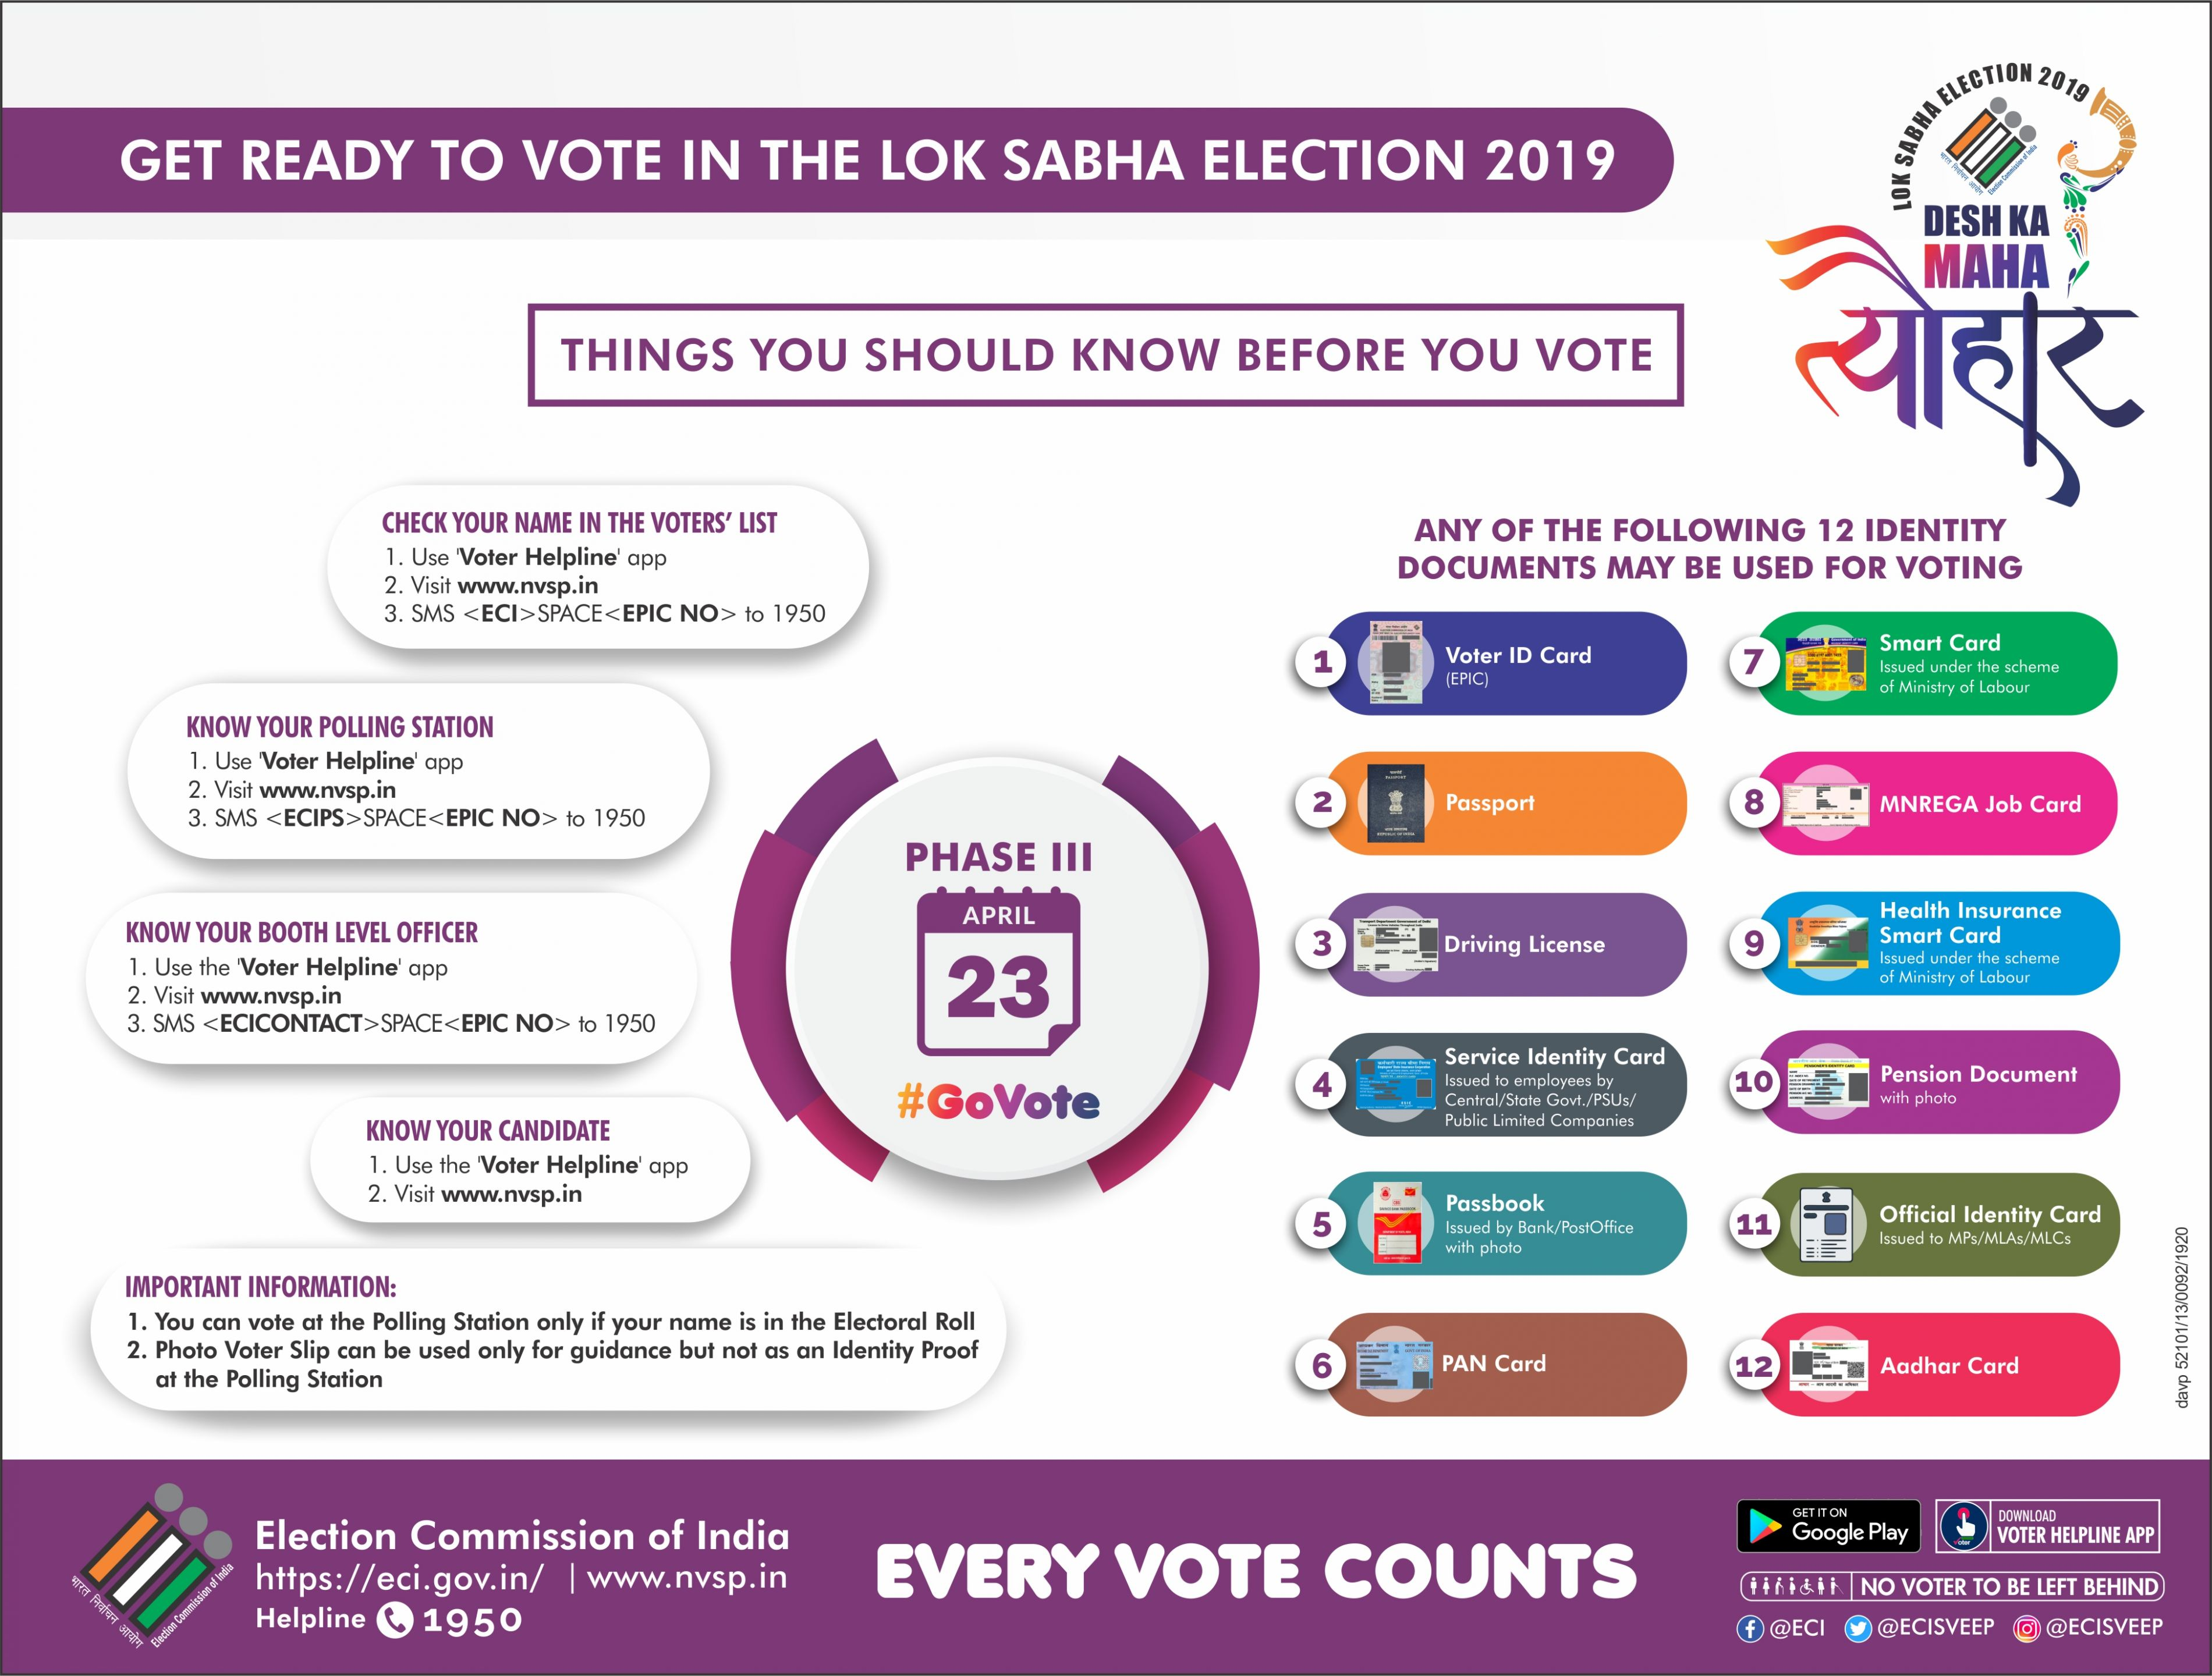 Poll Day Information